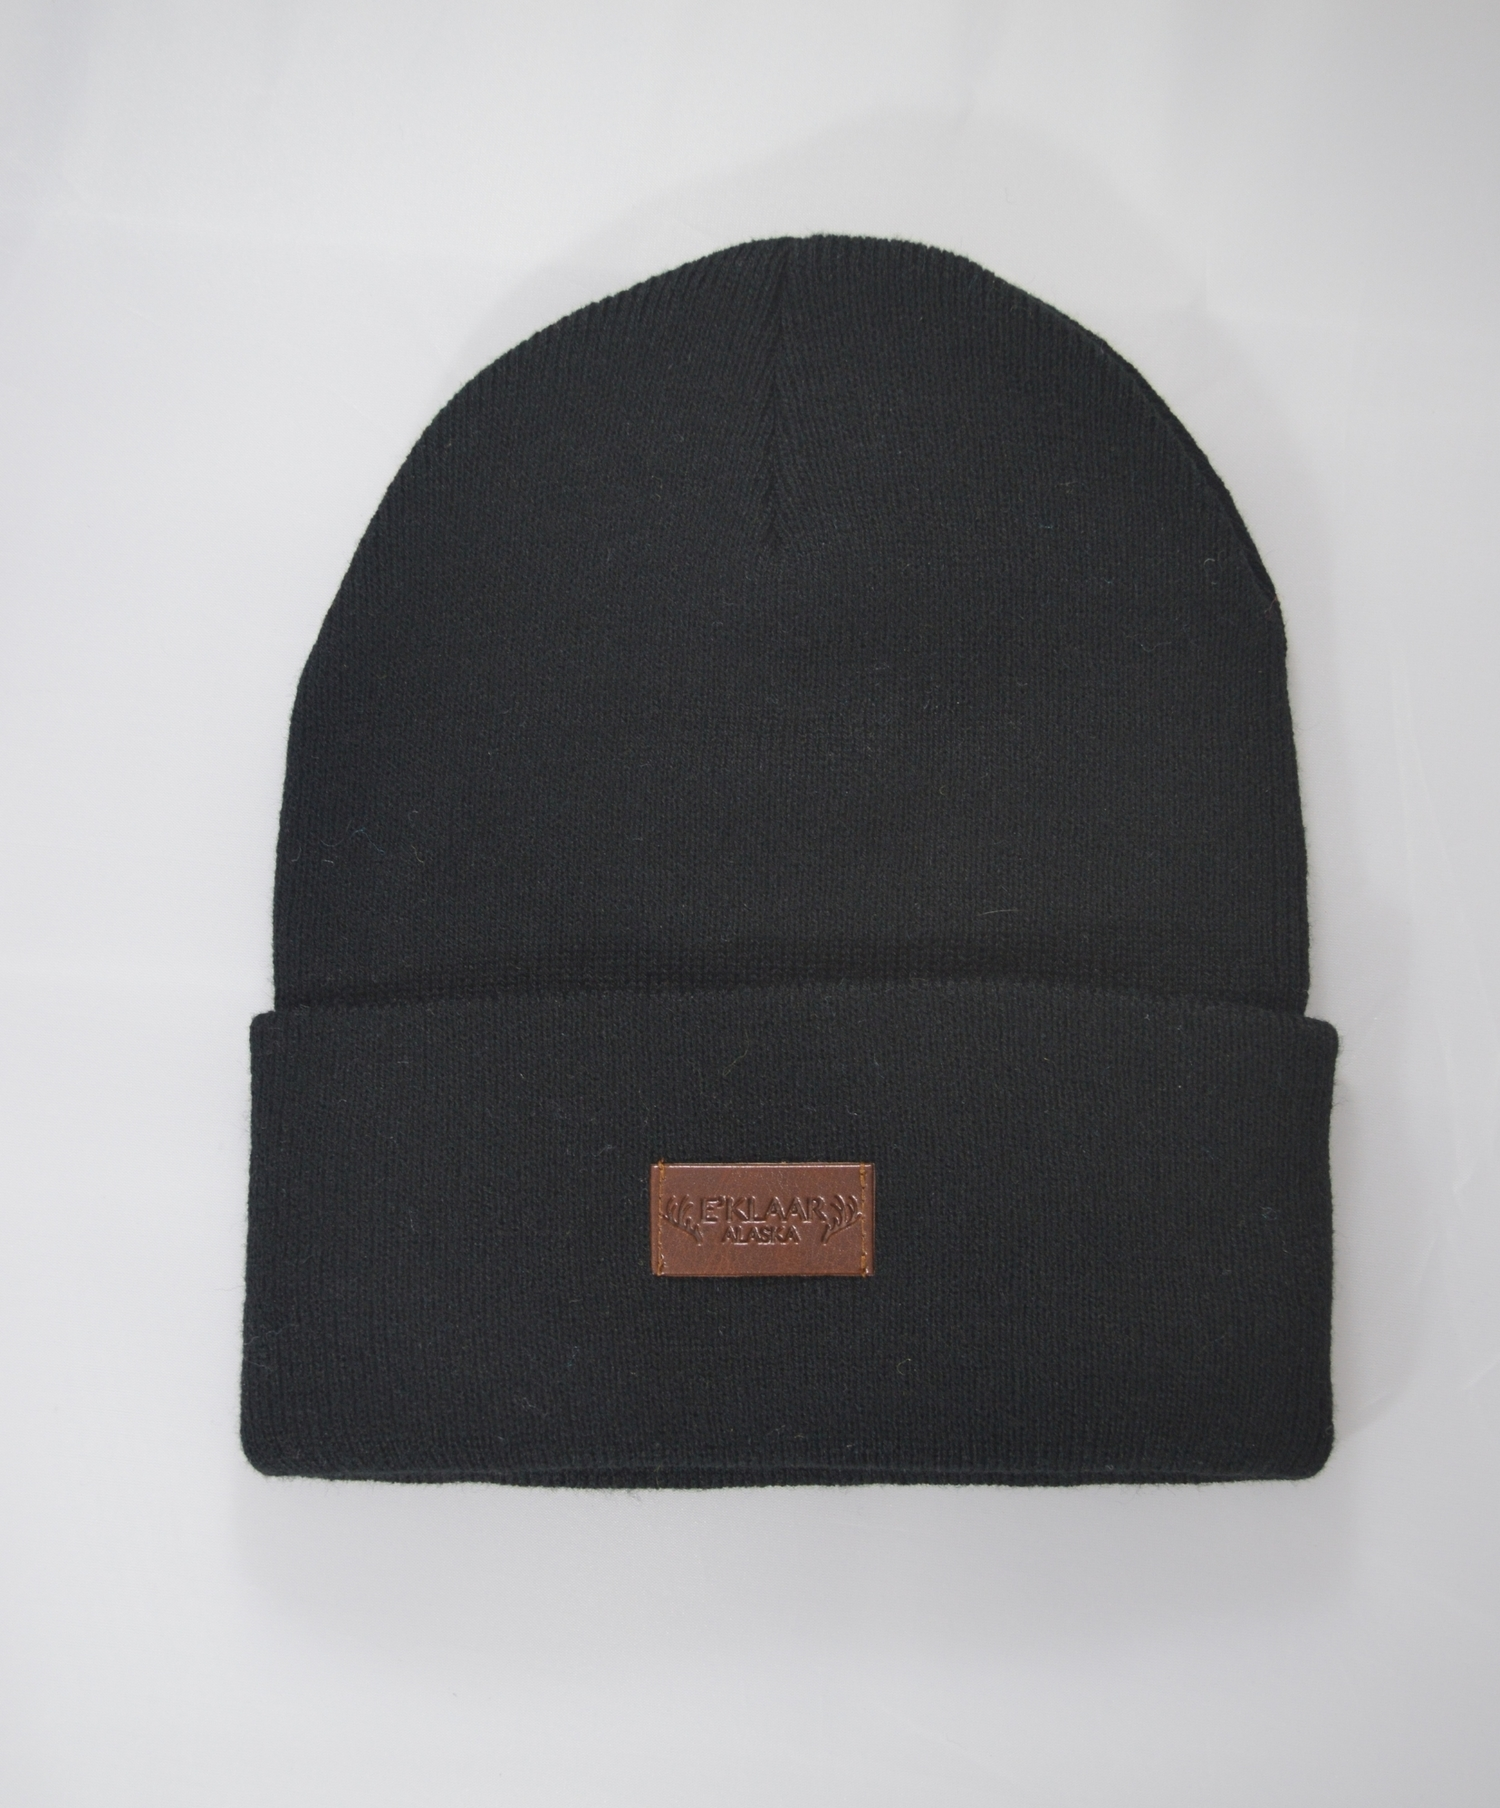 Black Fold Over Beanie With Leather Patch — E KLAAR 31fb5f6032d